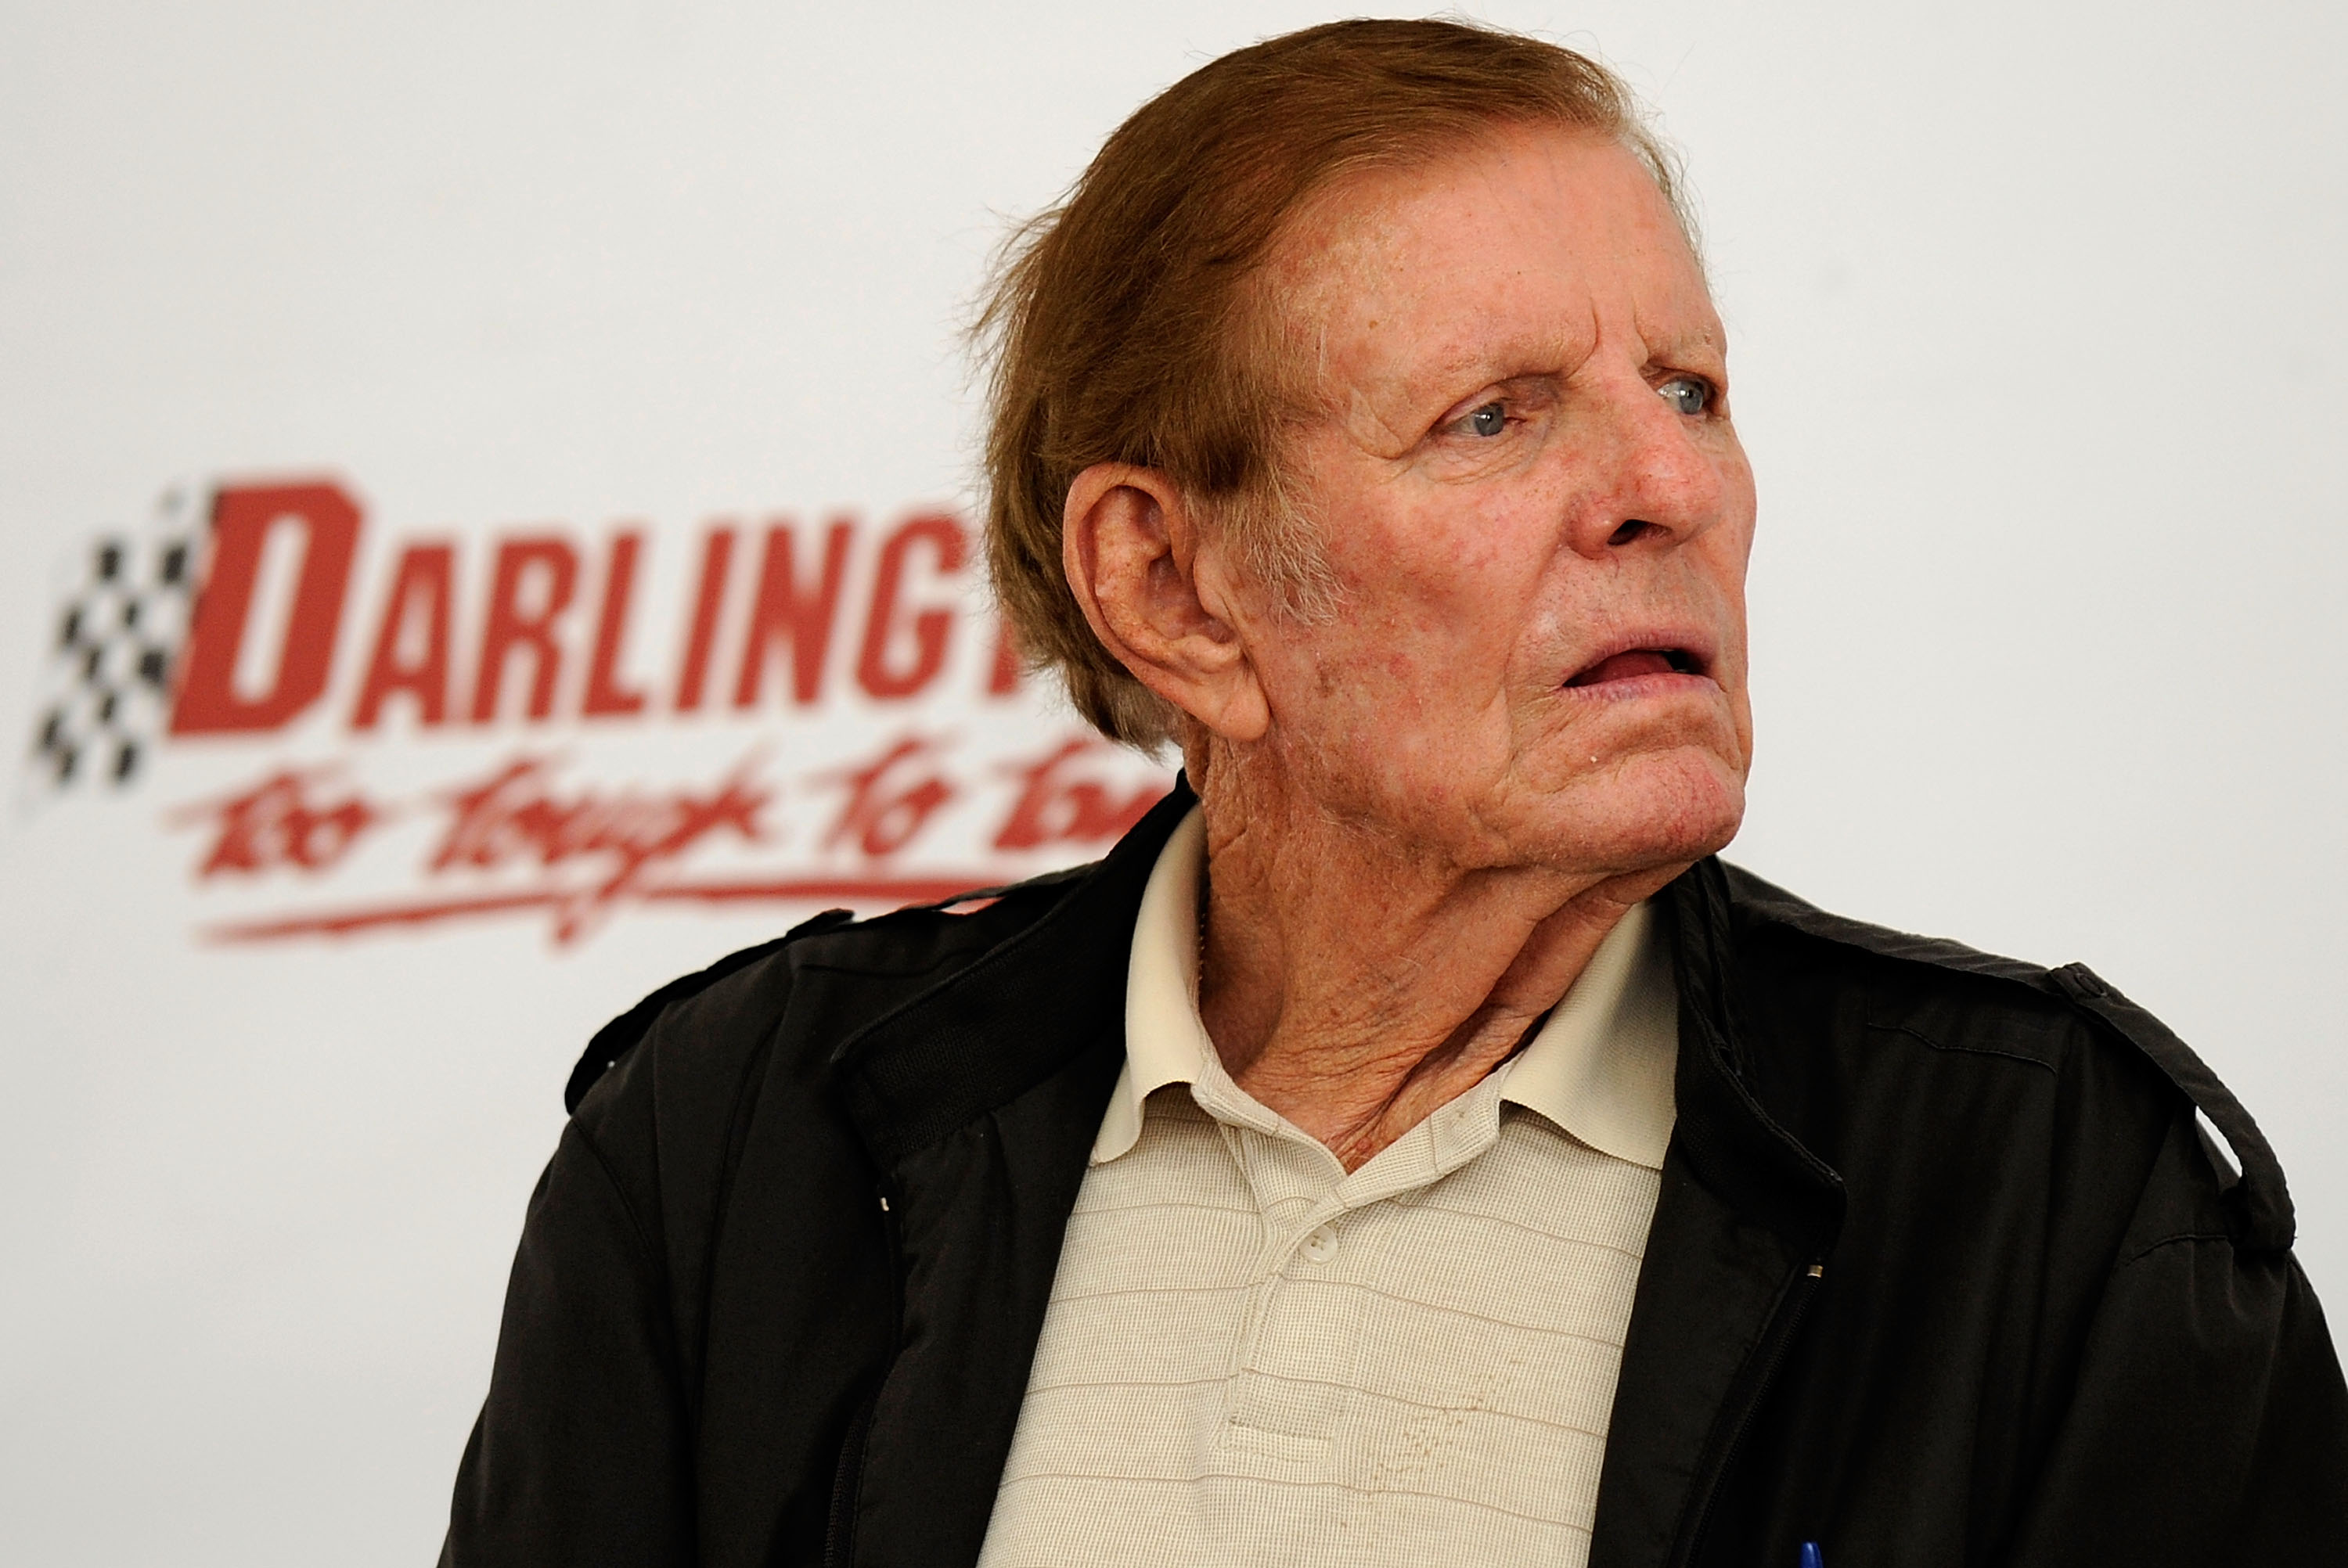 DARLINGTON, SC - SEPTEMBER 26:  NASCAR legend Bud Moore does a Q&A for fans during the Darlington Historic Racing Festival on September 26, 2009 at Darlington Raceway in Darlington, South Carolina.  (Photo by Rusty Jarrett/Getty Images)